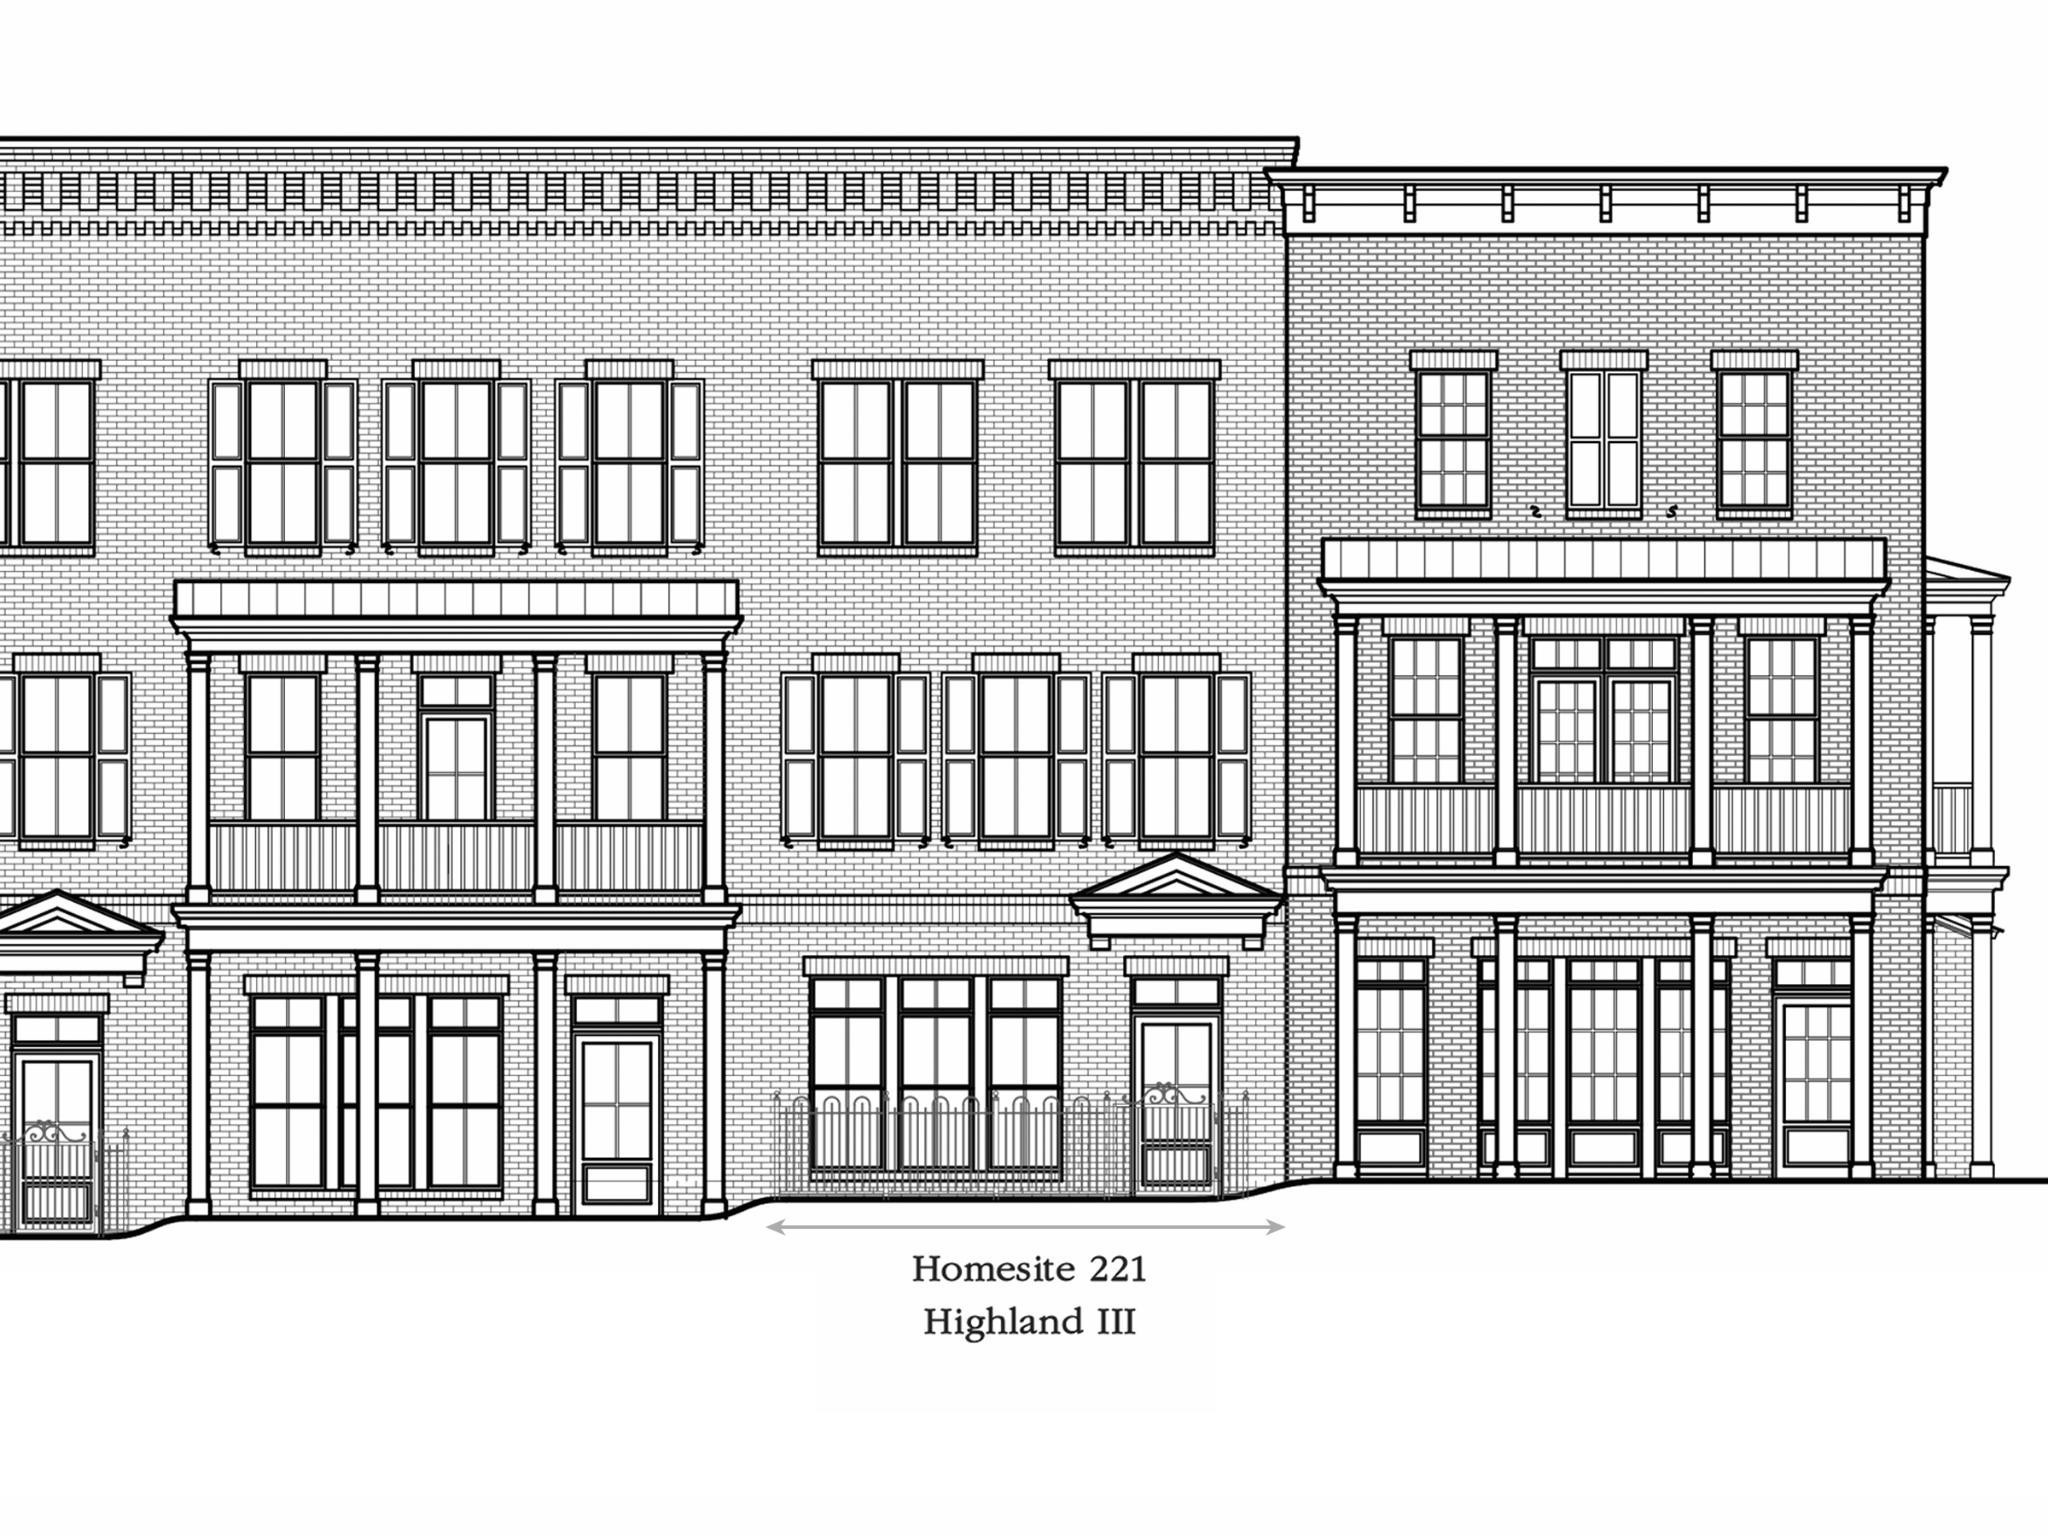 LIVE WORK TOWN HOME AT TOLLGATE.. New Construction ready in February 2021. The 2002 s/f Highland is a Gorgeous Open Floor Plan. First Floor Has a 19X11 Retail Office Space. 2 Car Attached Garage. The Highland brings elegance to everyone's lifestyle. The main living level features an expansive great room and dining room open concept. The gourmet kitchen is a chef's delight with an eat-at island that opens to a Large 2nd story Deck. Two Master Bedrooms on Top Level. See attached Brochure